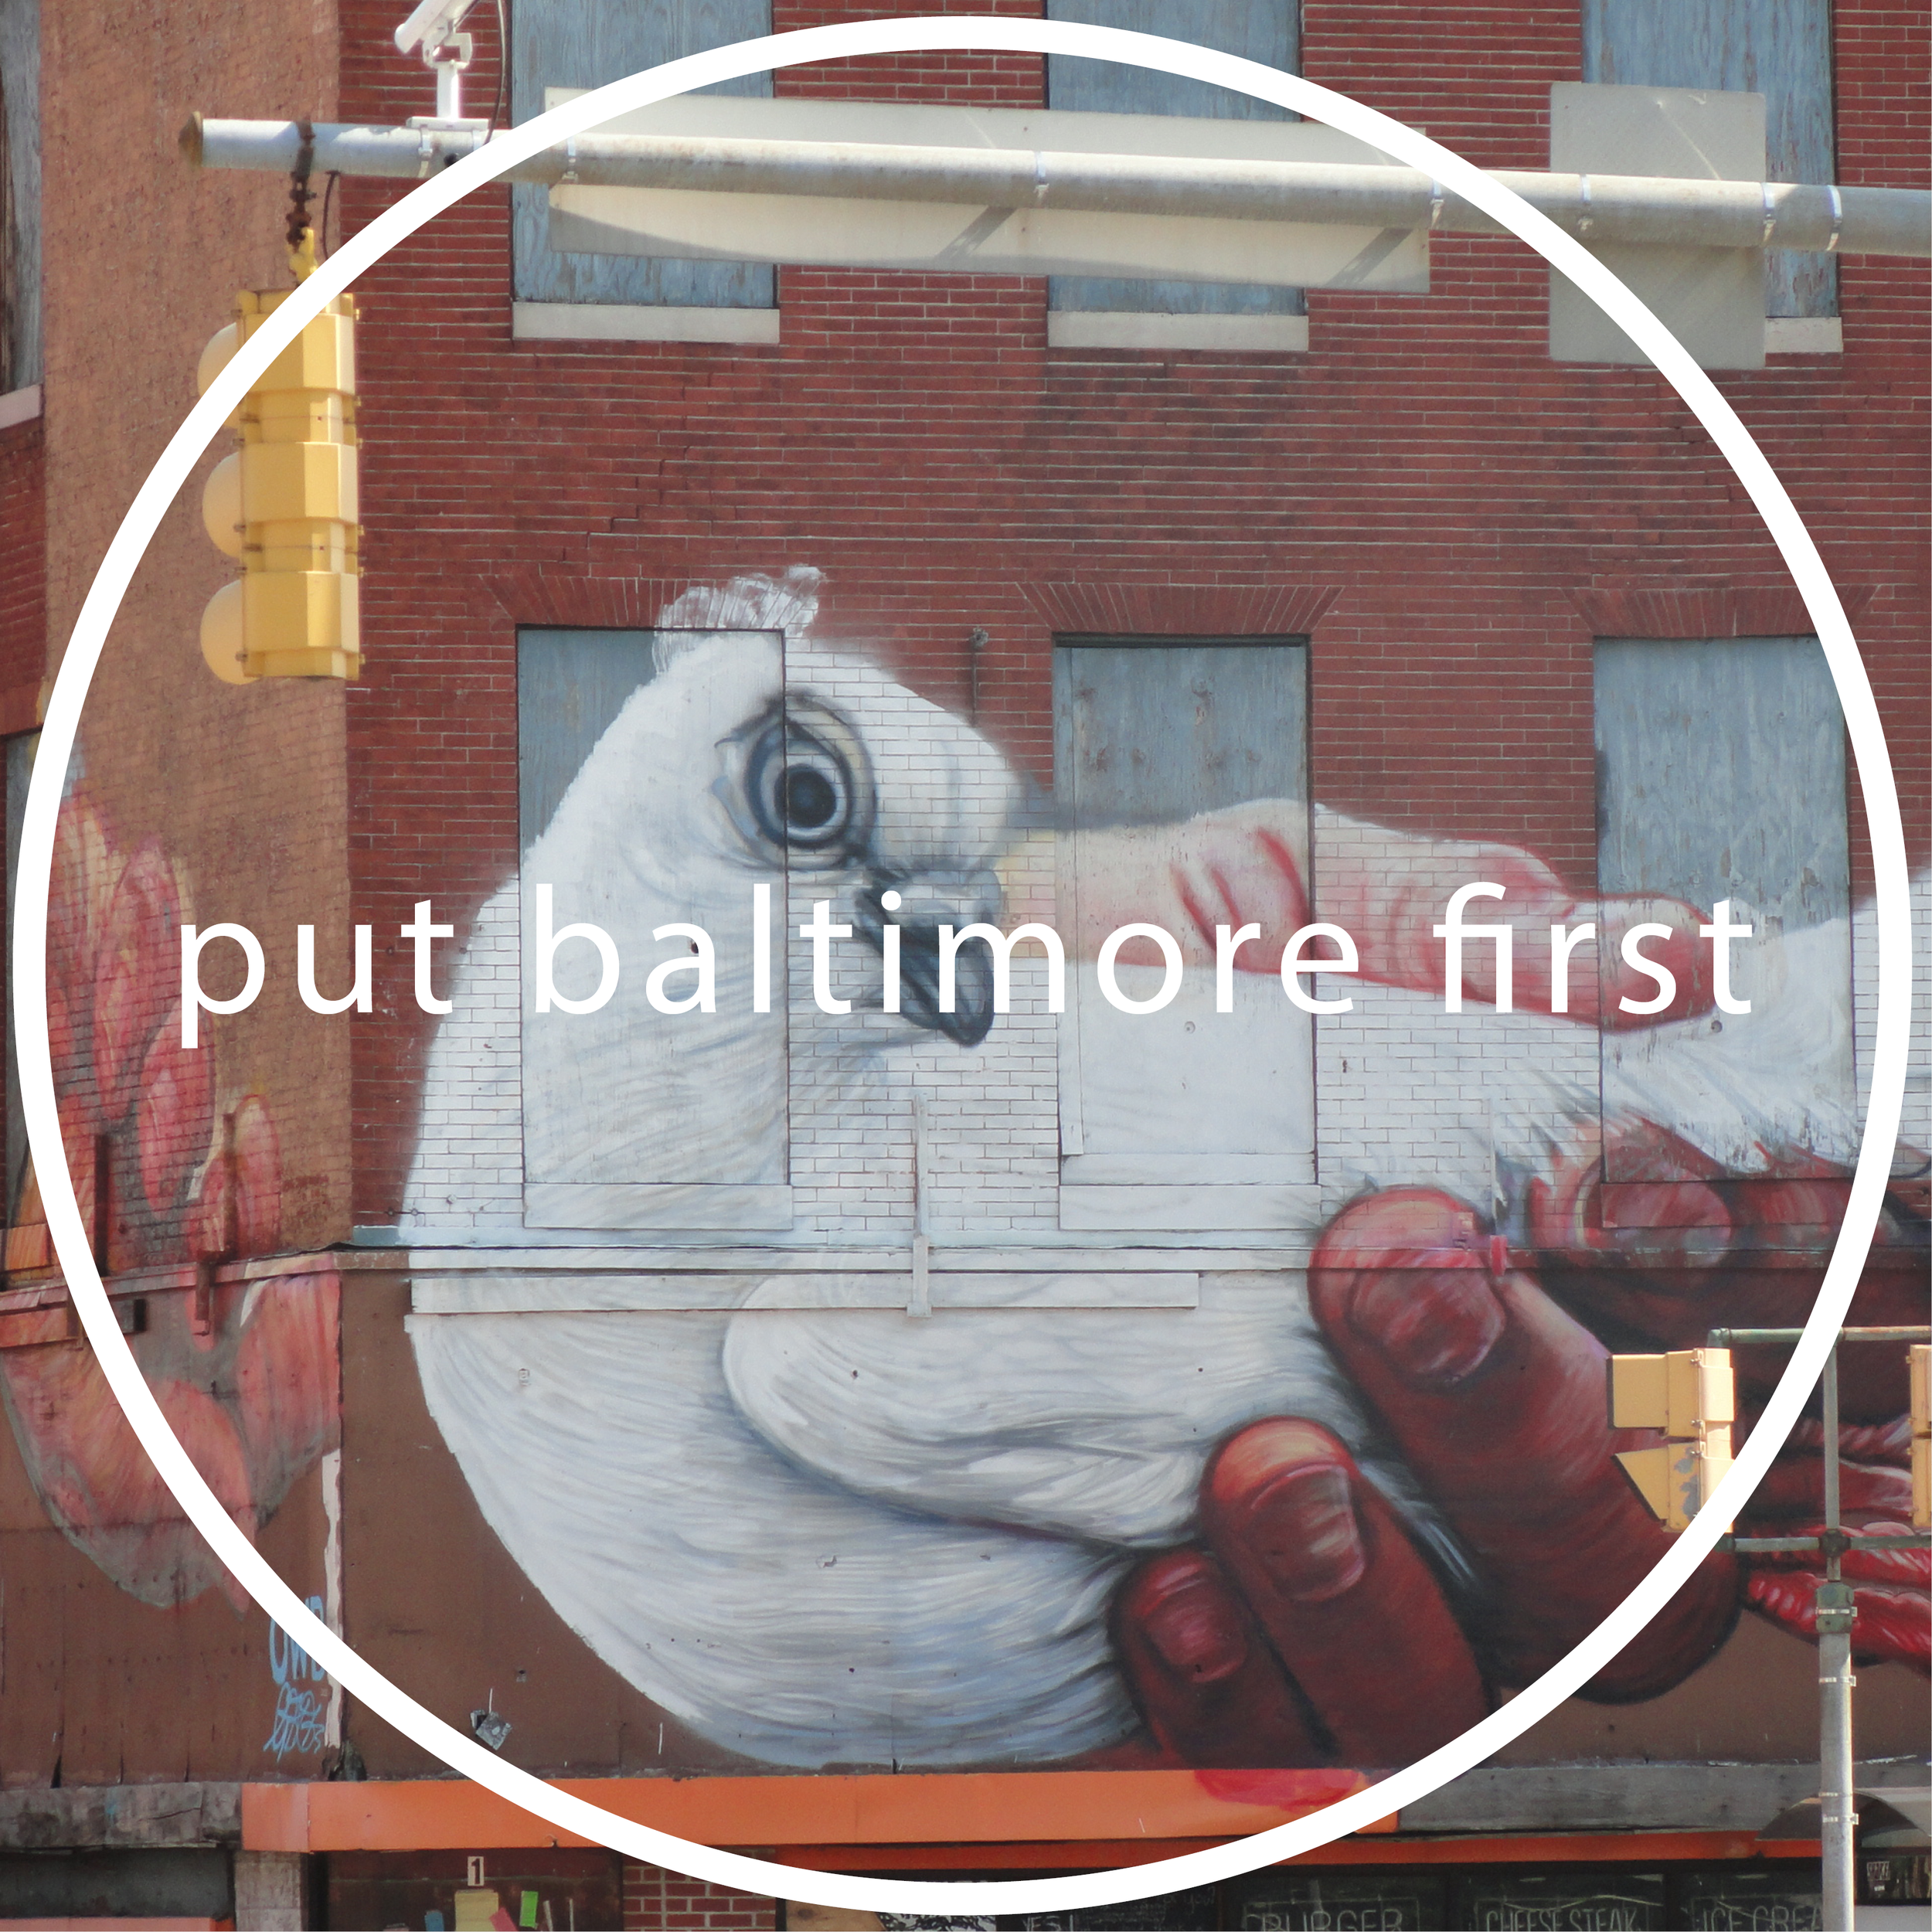 By building a diverse and cooperative network of change makers, we can elevate Baltimore's interests above those of any one organization